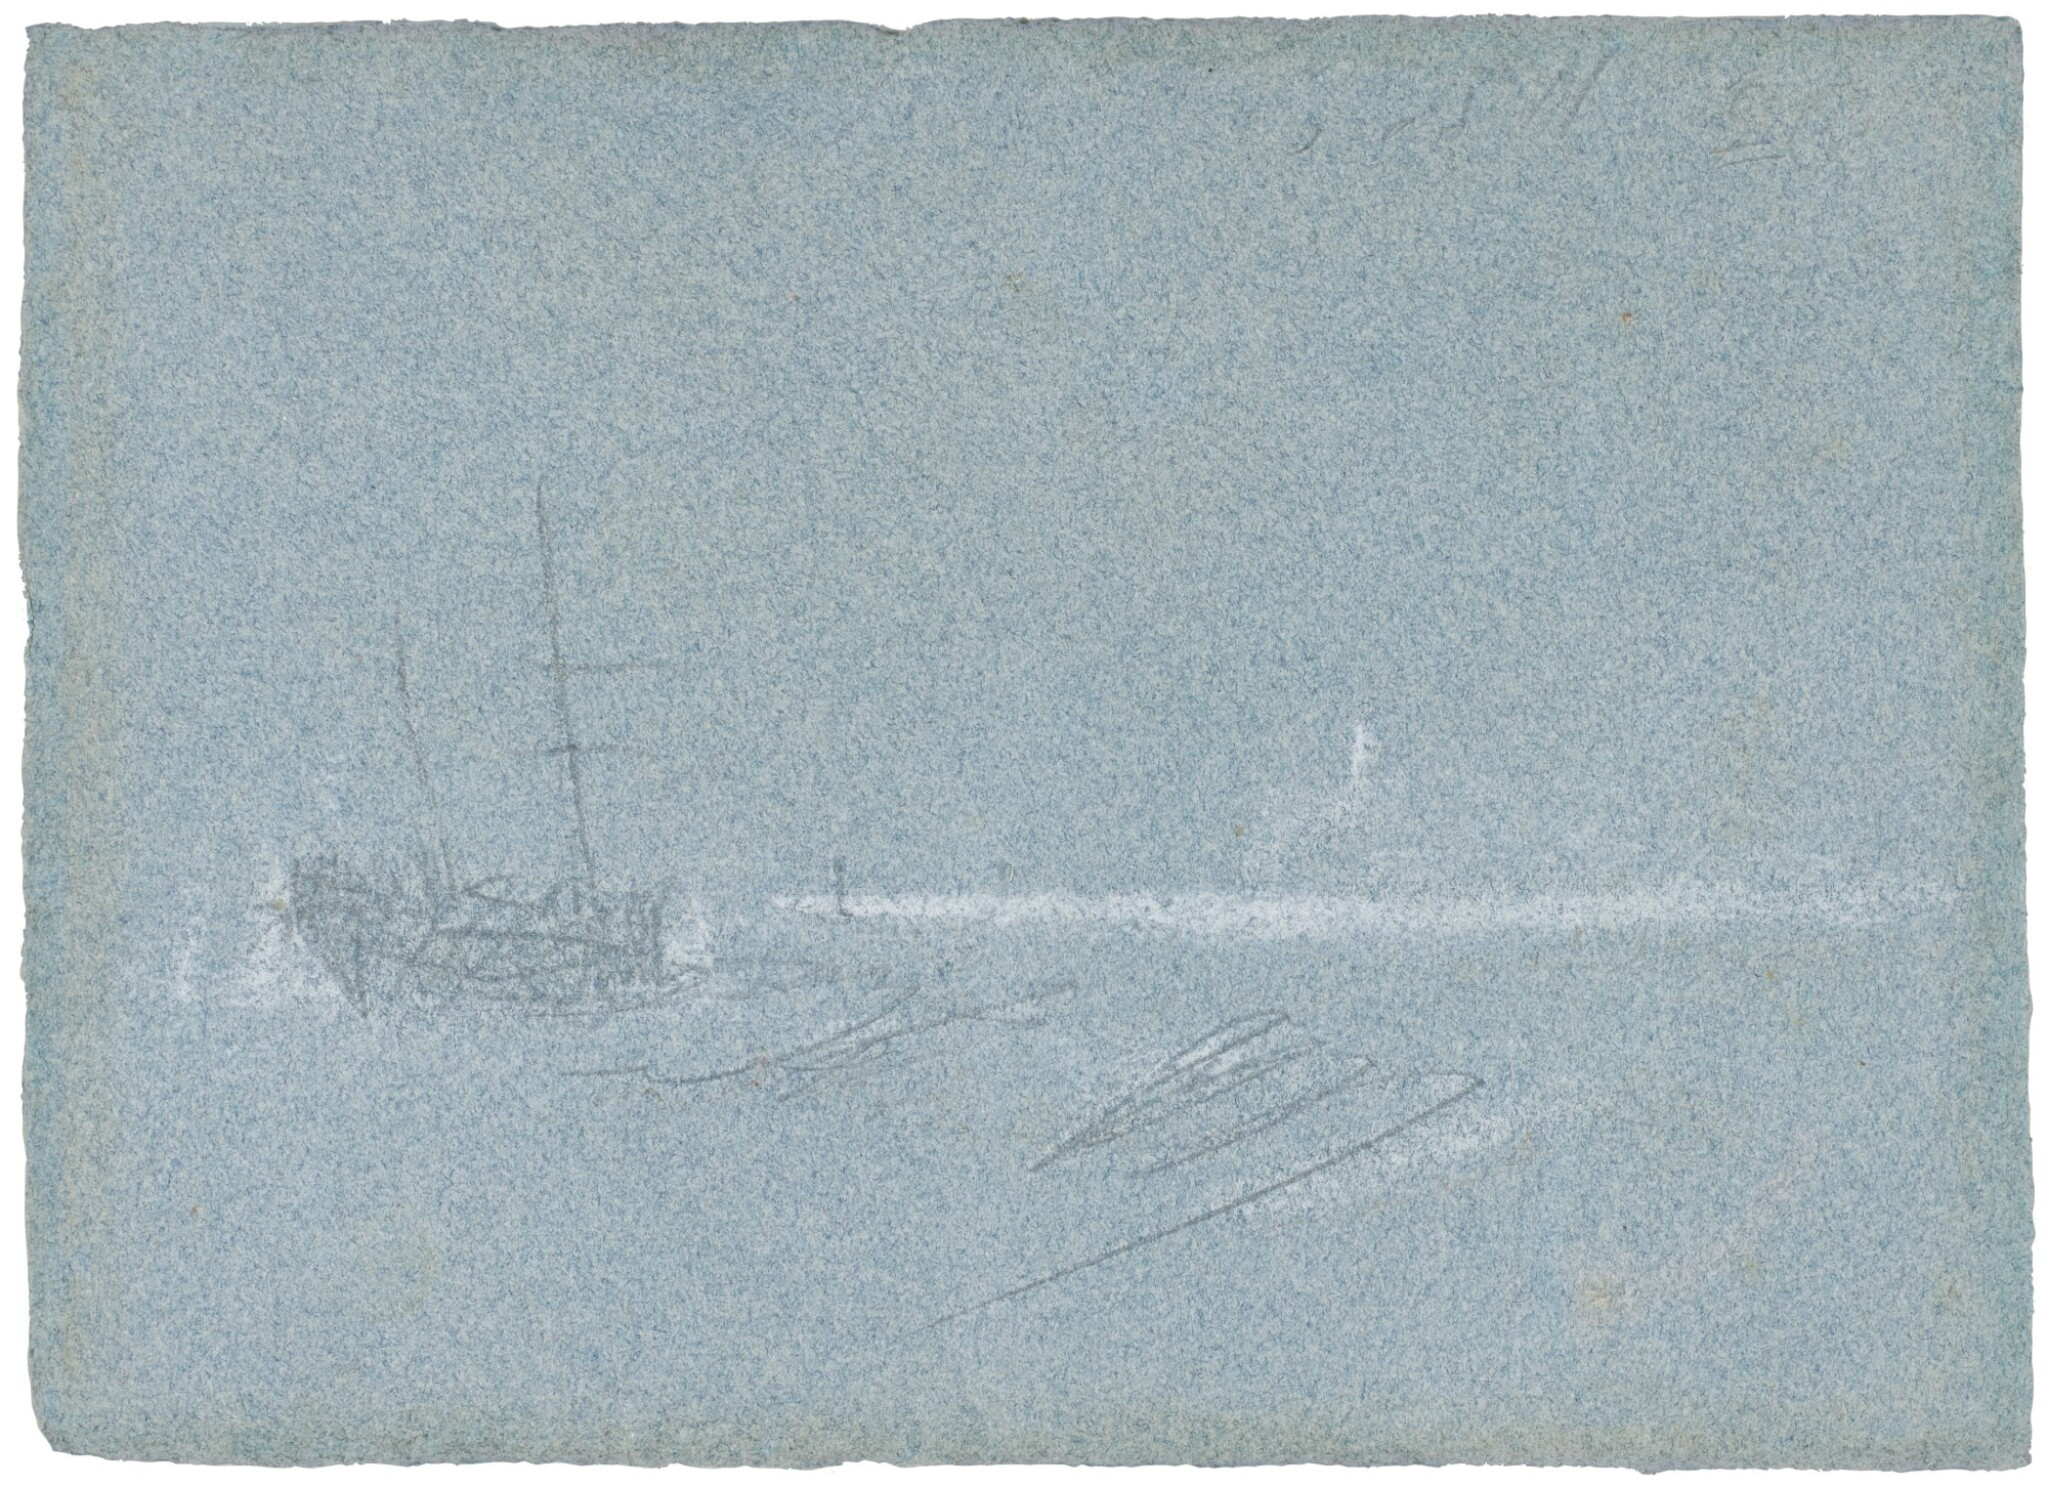 View full screen - View 1 of Lot 17. JOSEPH MALLORD WILLIAM TURNER, R.A.  |  OFF MARGATE, 1840.